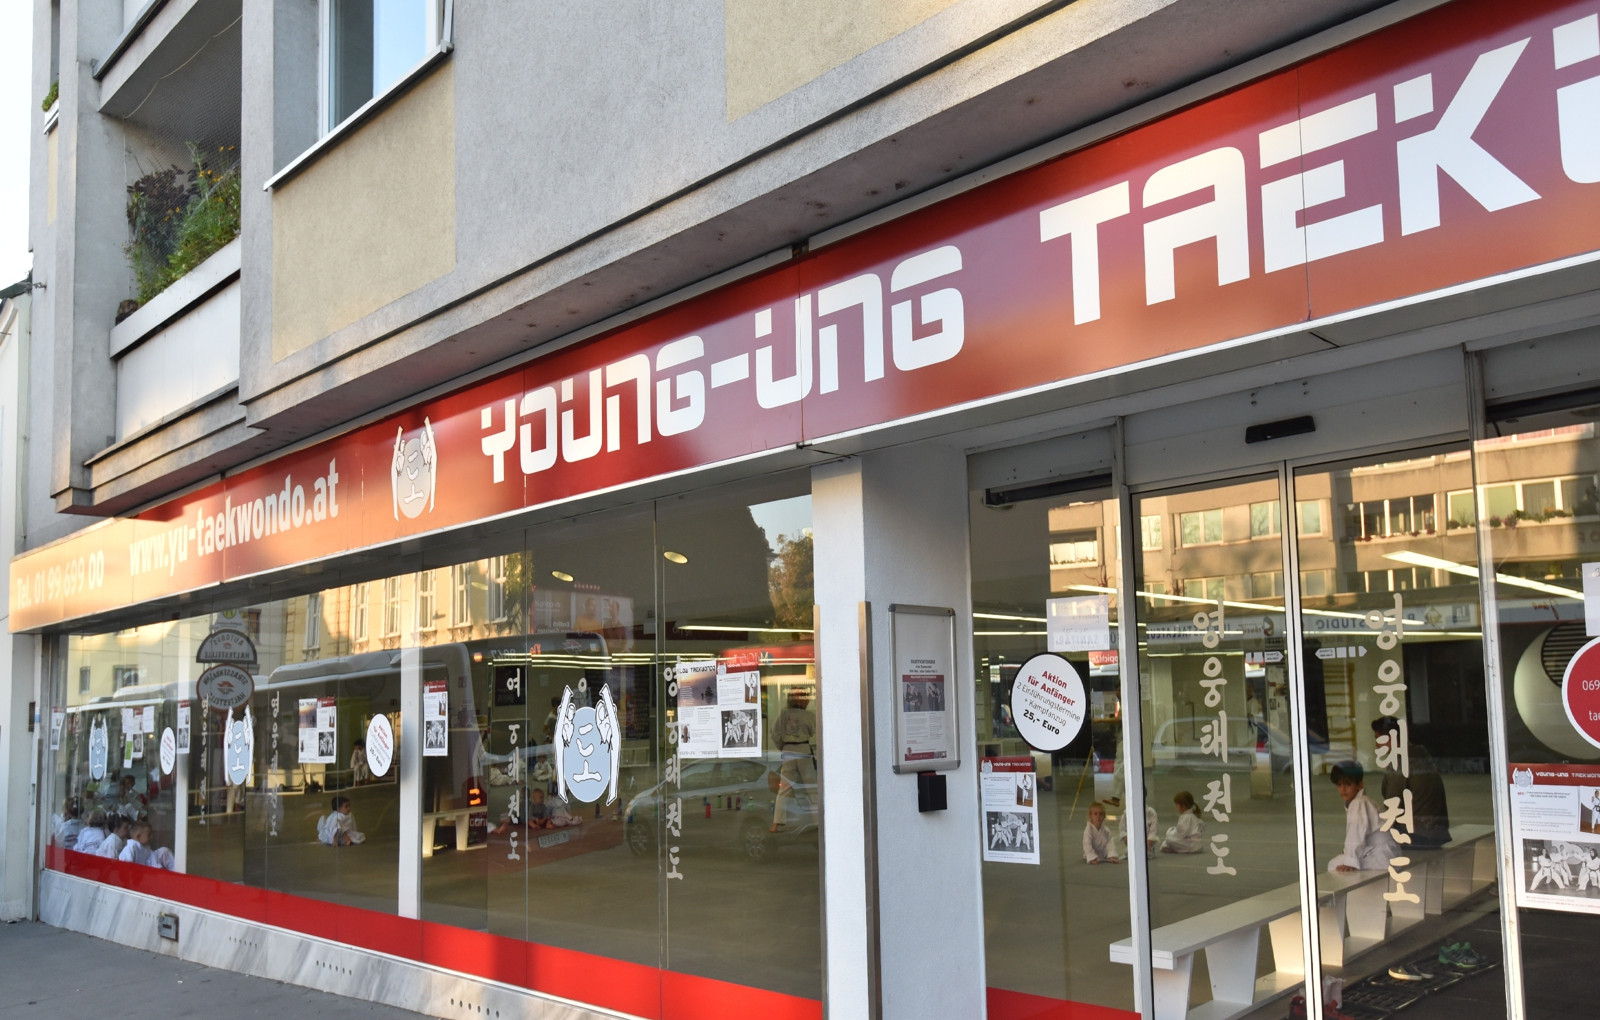 YOUNG-UNG | Wien 19